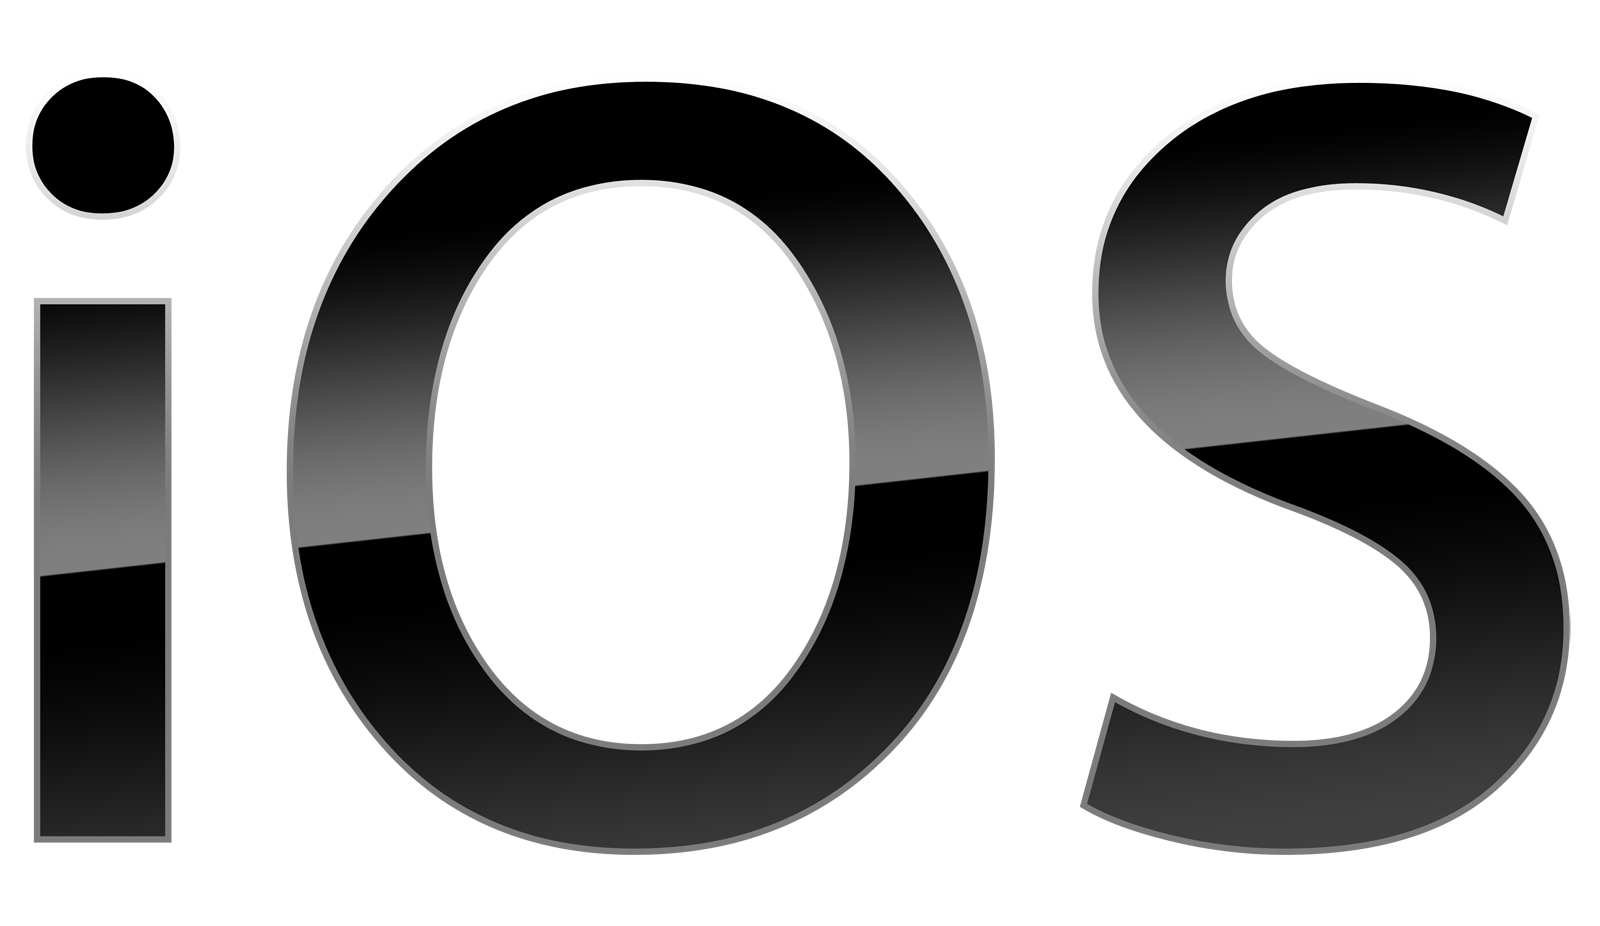 iOS Logo, iOS Symbol Meaning, History and Evolution